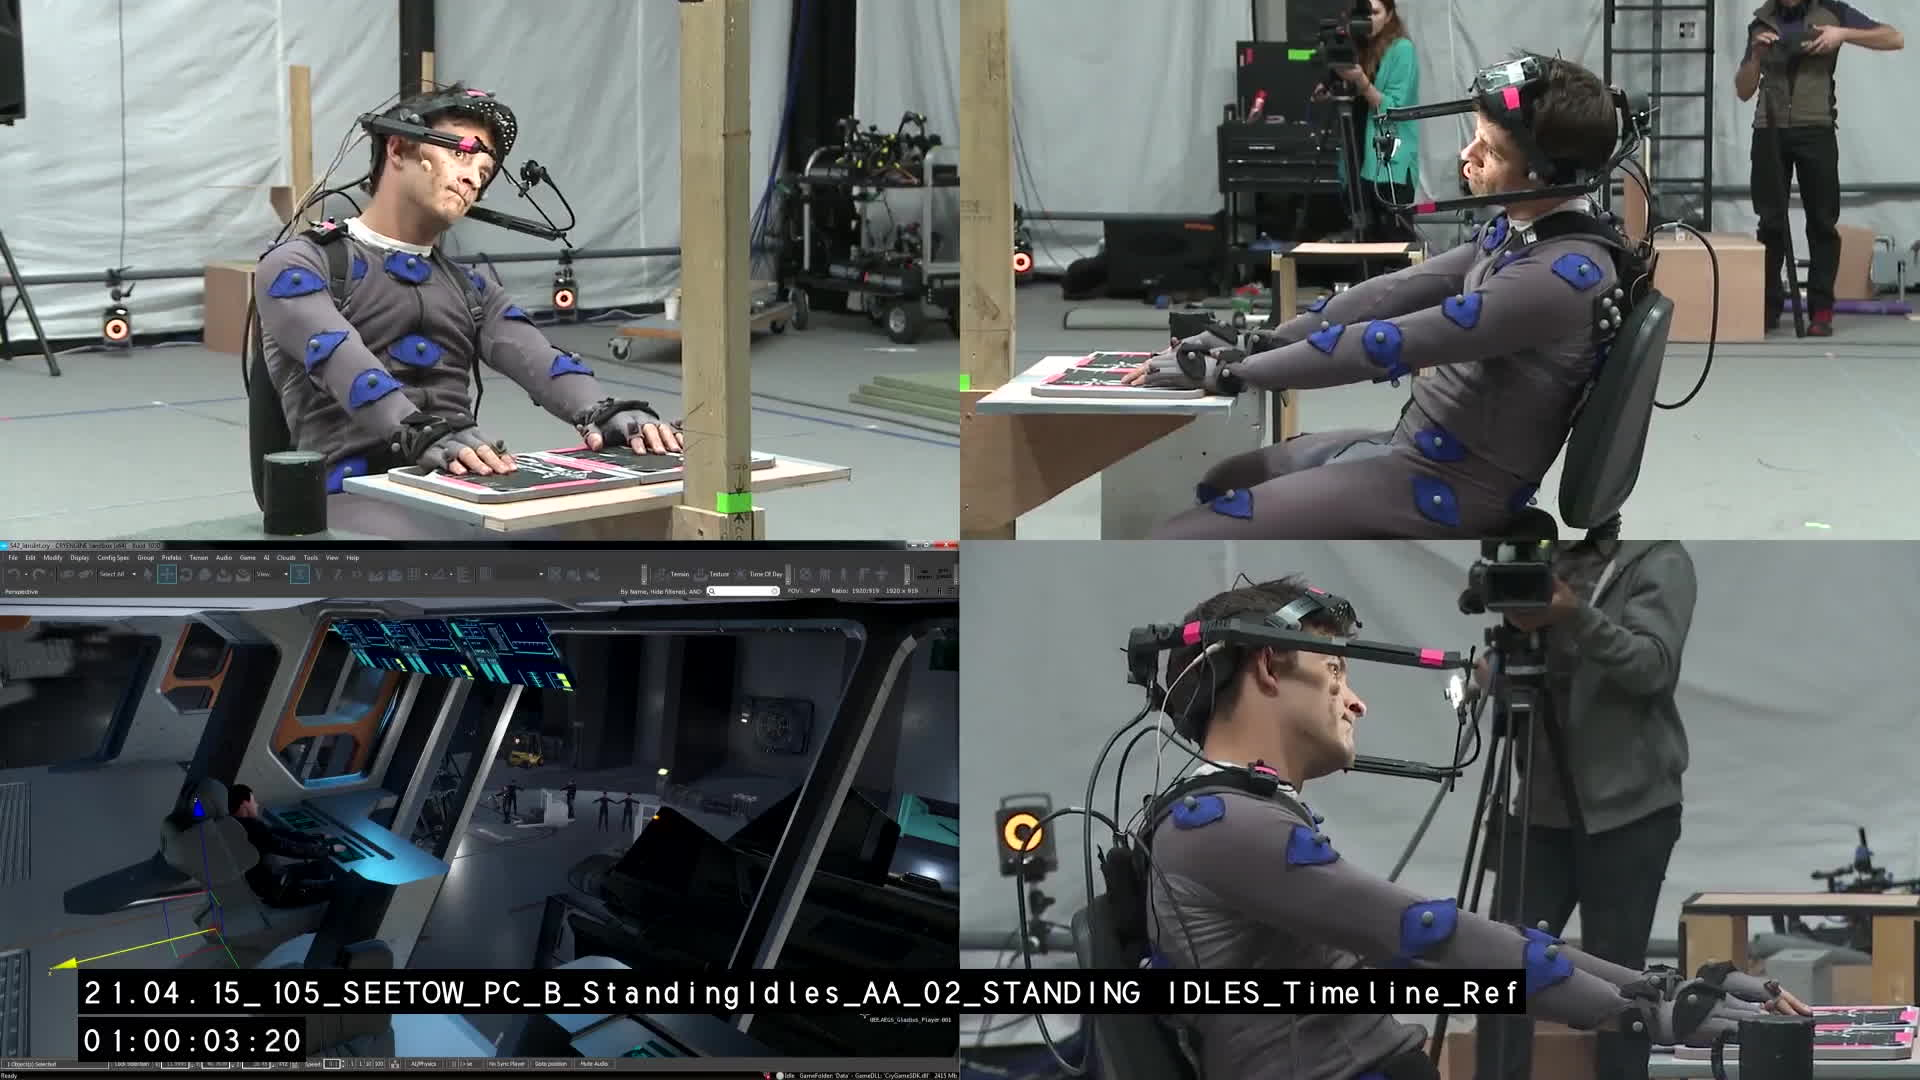 Cloud imperium roberts space industries star citizen flight controller mocap 3 gifs